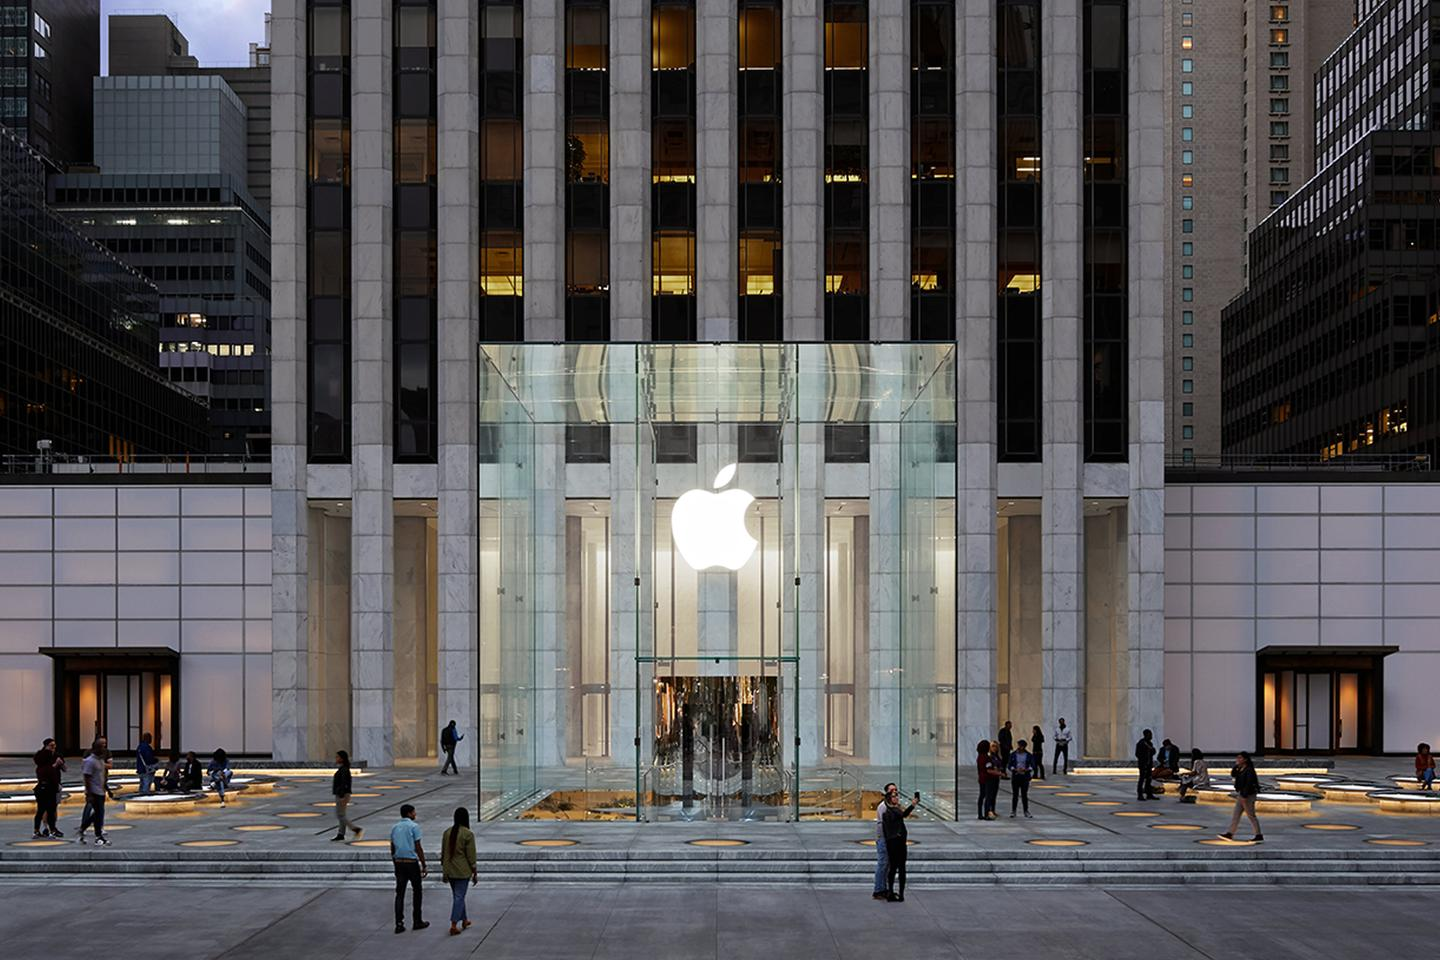 Apple Fifth Avenue has reopened after receiving a significant renovation courtesy of Foster + Partners and Apple's own design team